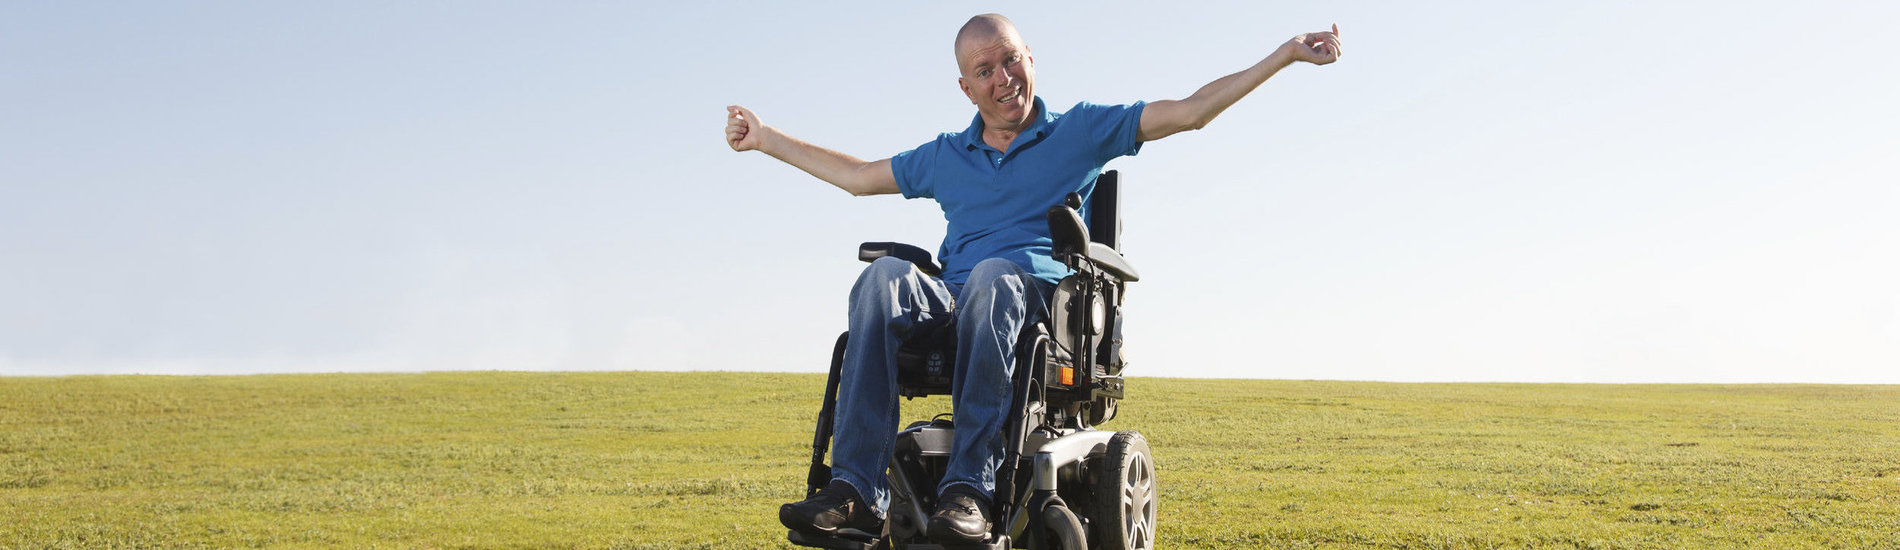 Disability Services Systems